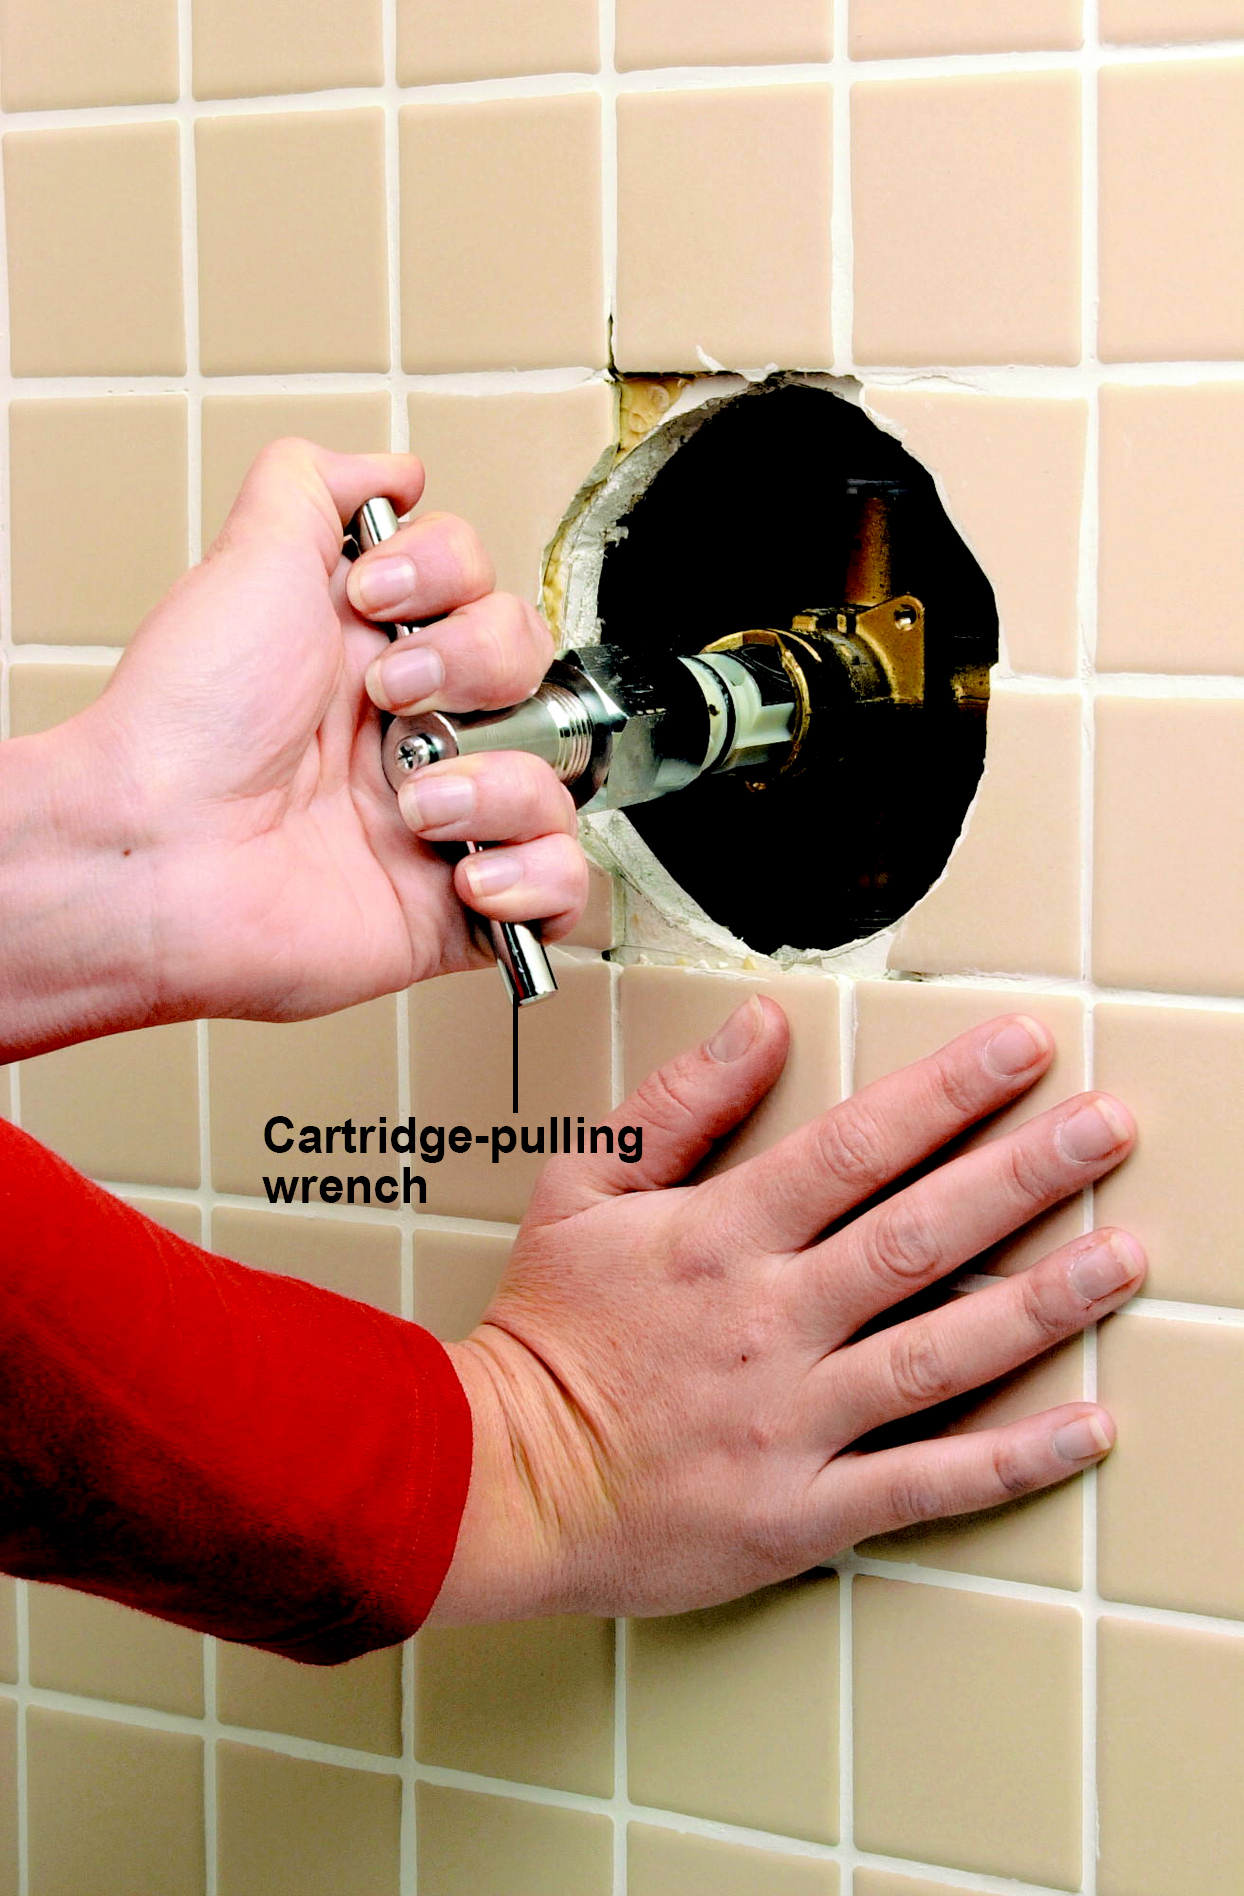 remove cartridge with wrench